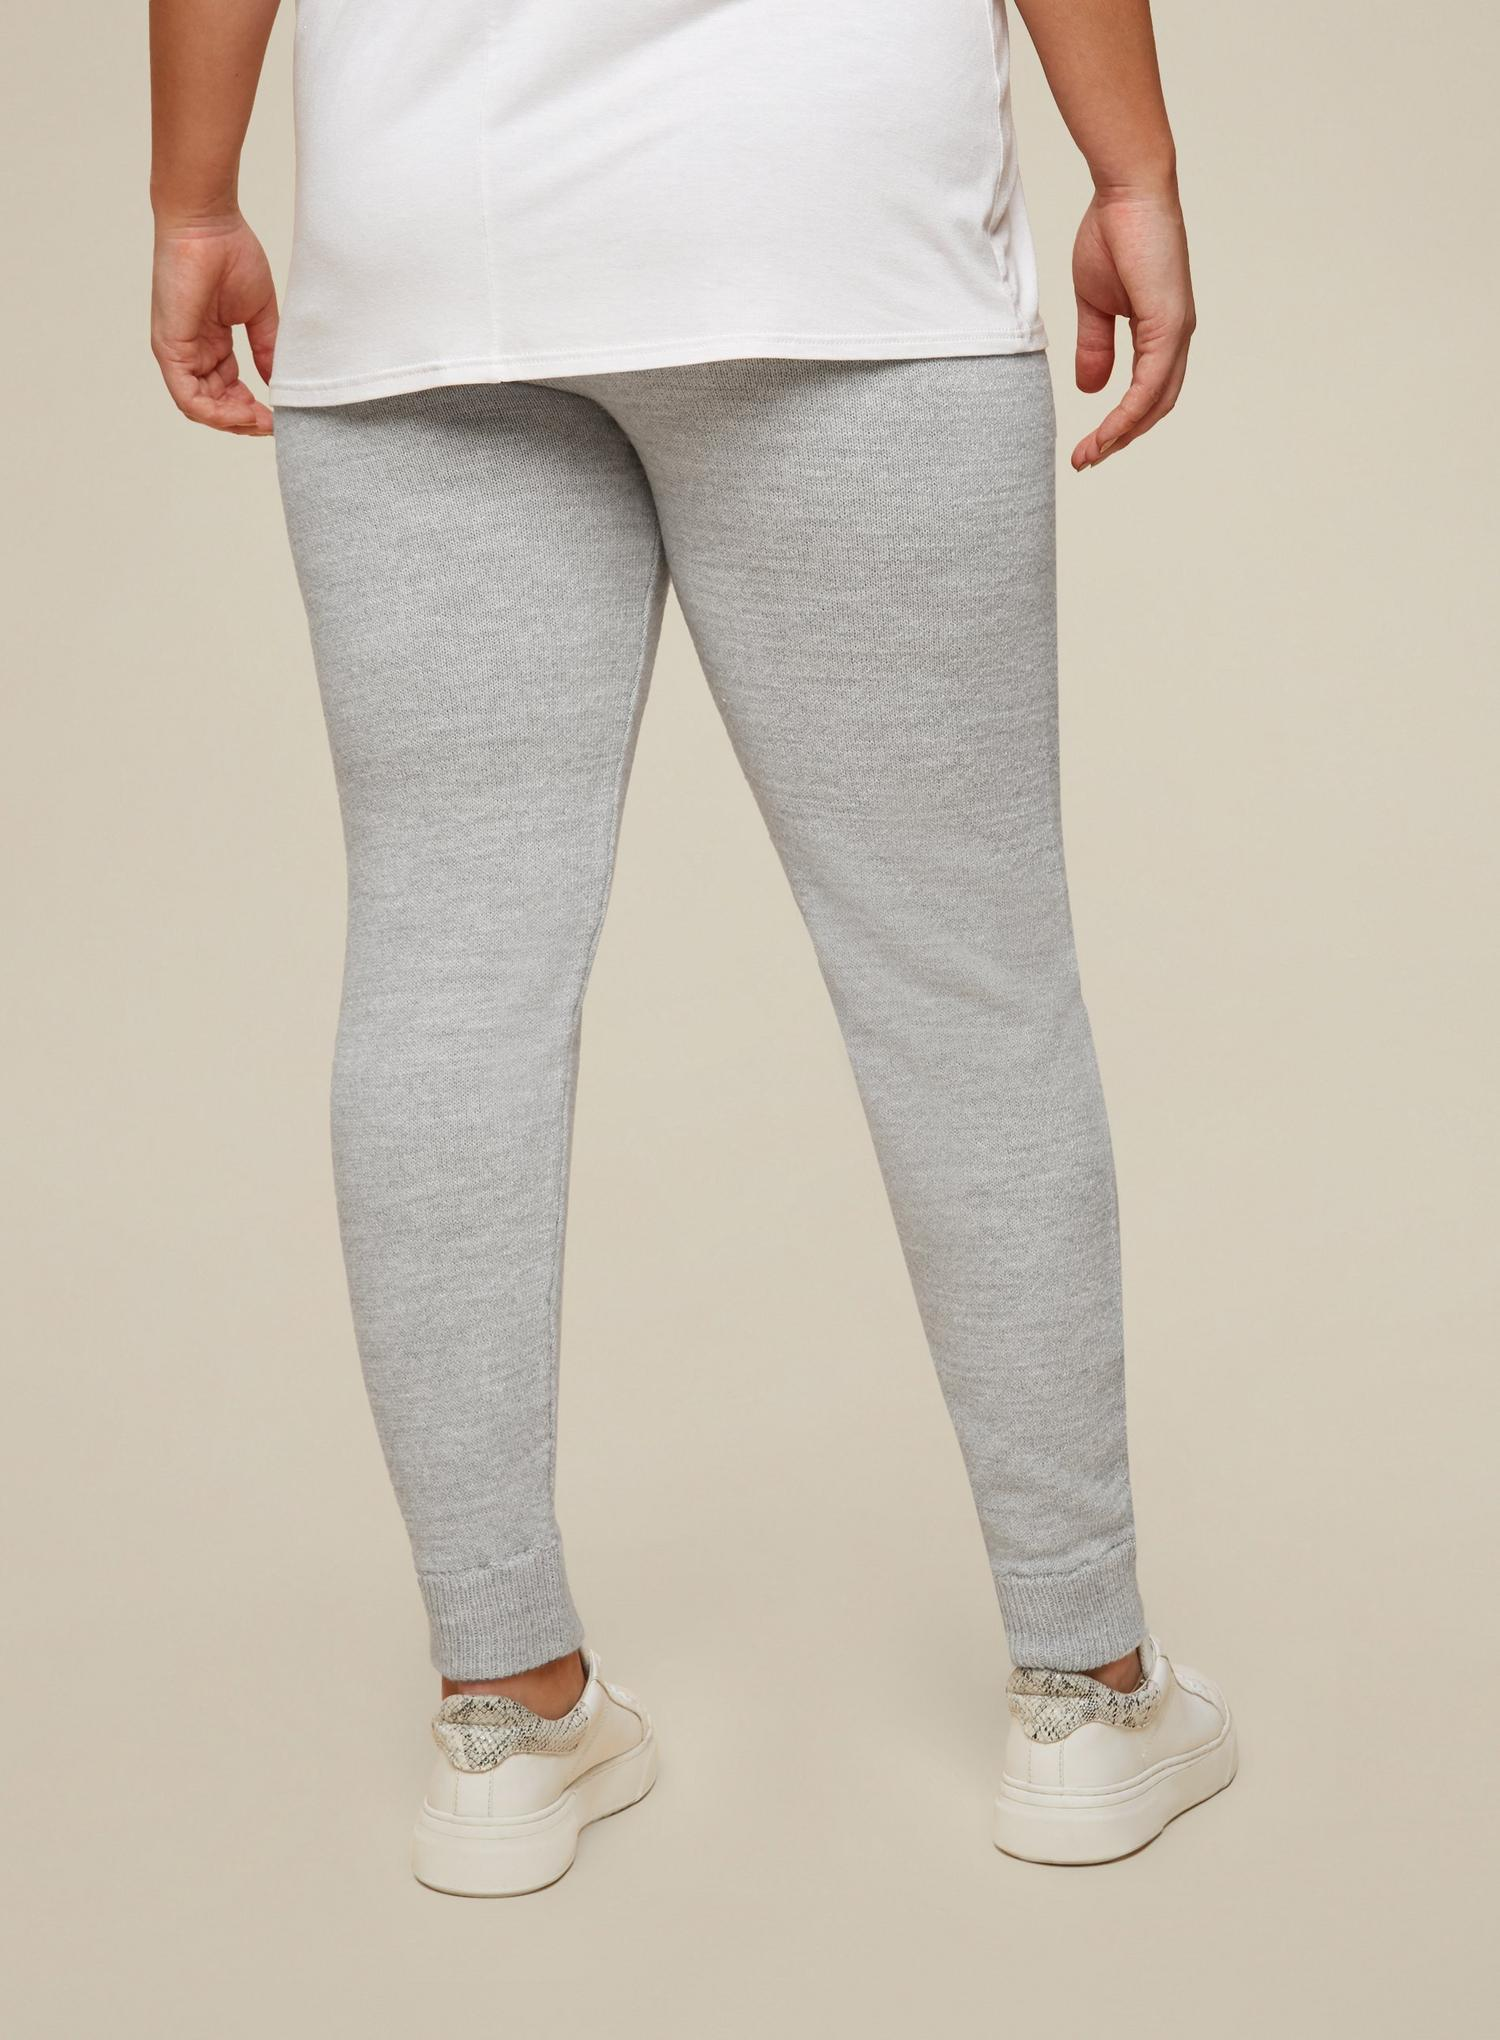 131 Curve Grey Lounge Knitted Joggers image number 2